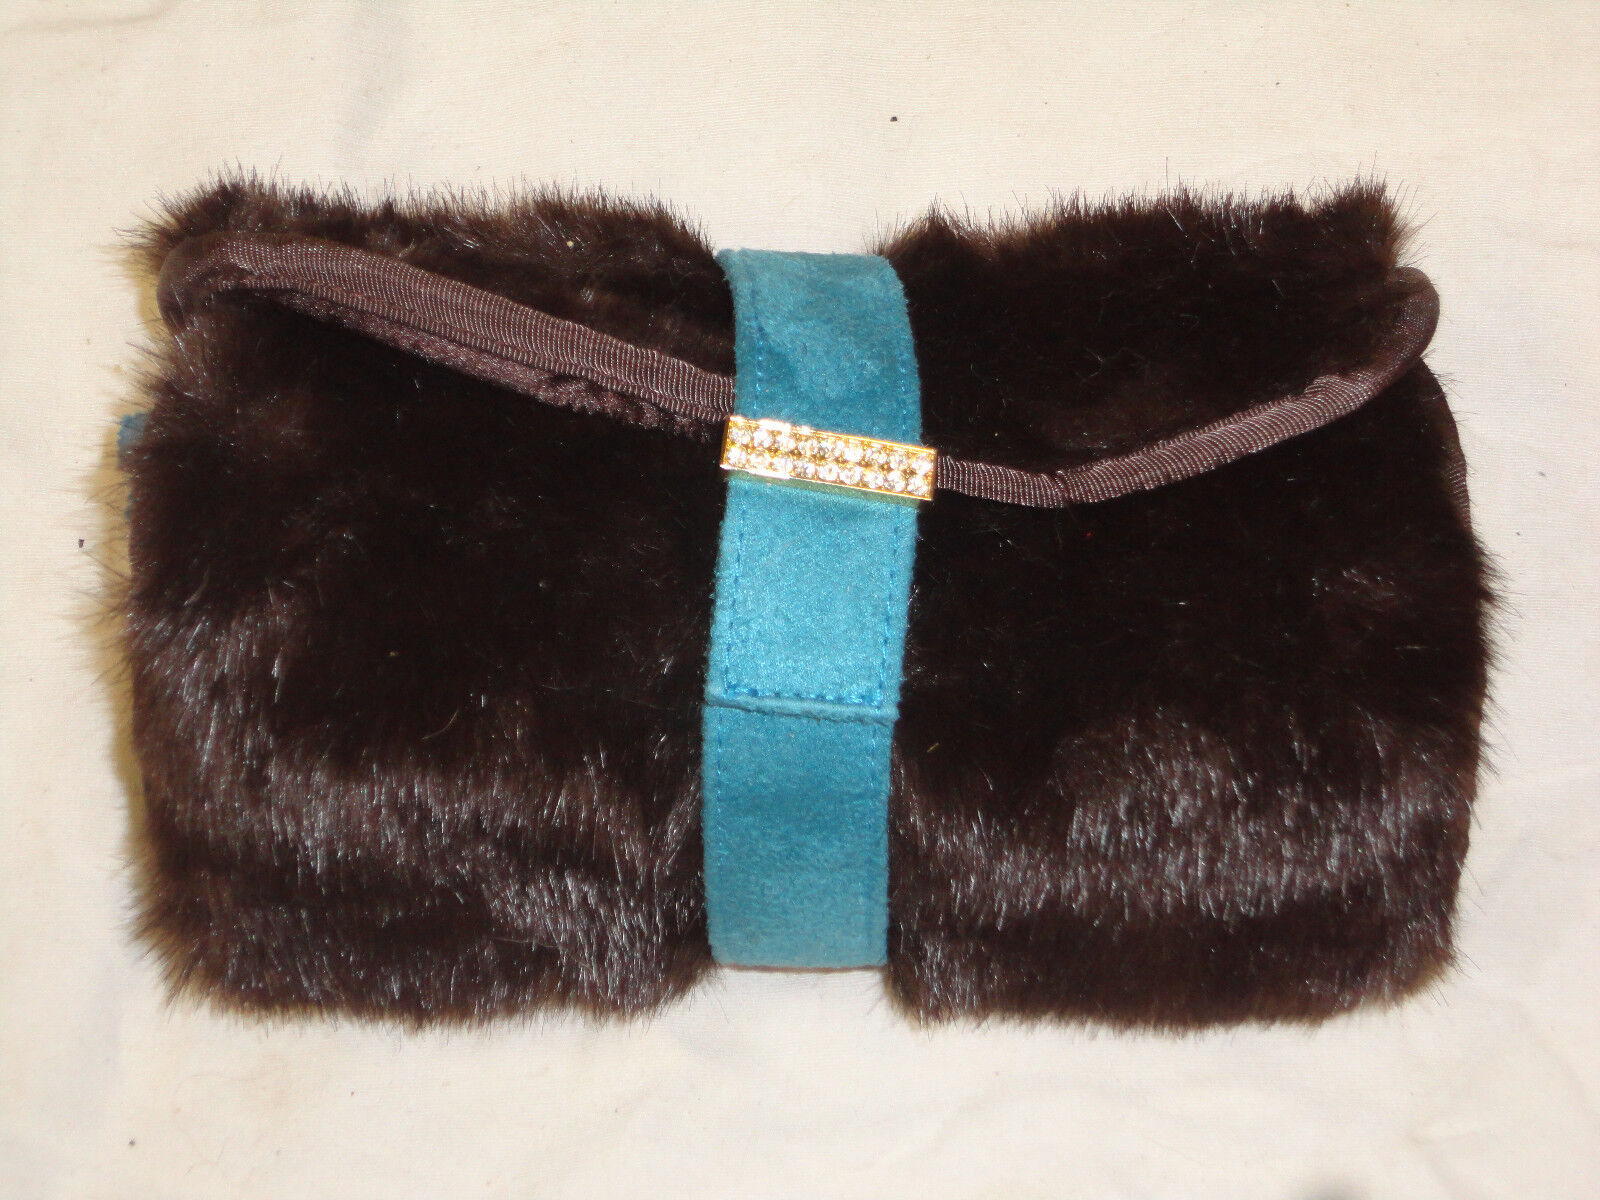 Stephanie Johnson faux fur travel bag with cosmetic bag in t